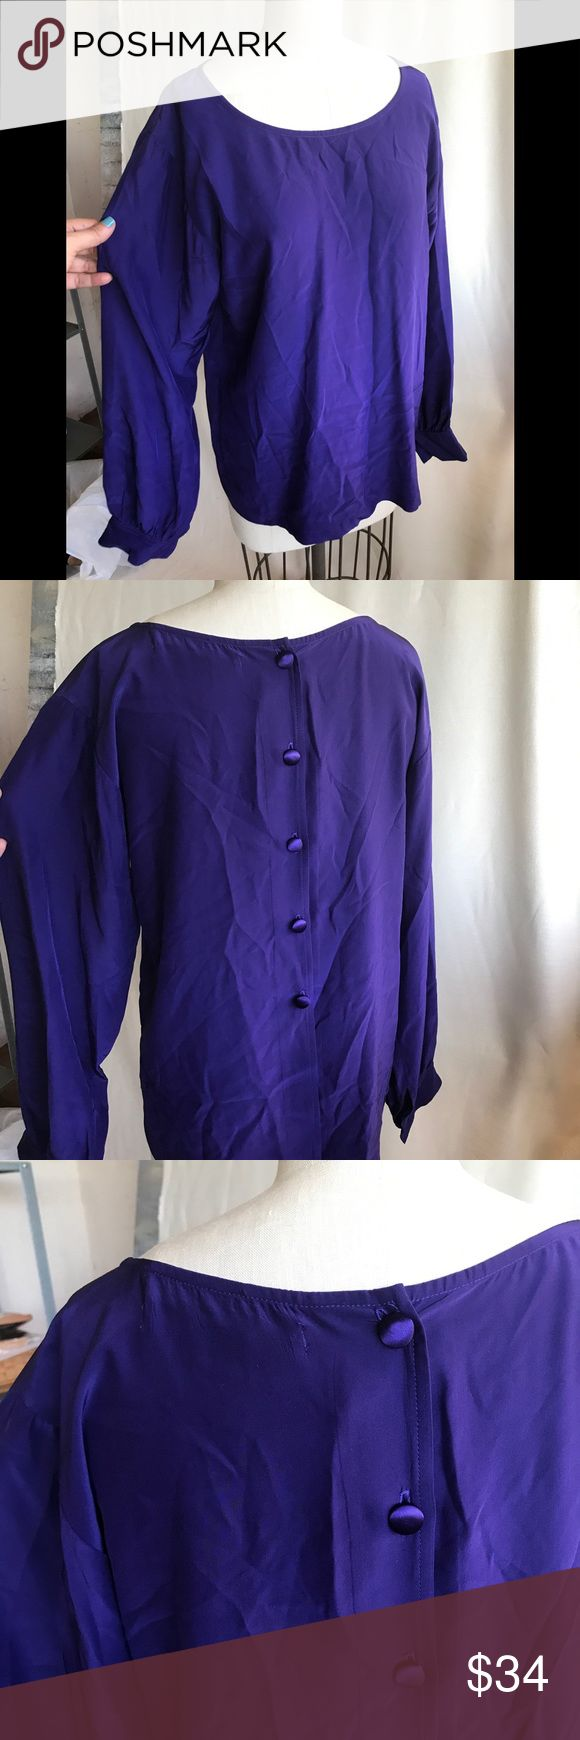 Graham & Spencer new 100% silk purple blues S Very minimalistic and classy silk blouse by Graham & Spencer. Nice detail is contrast satin buttons at the back Velvet by Graham & Spencer Tops Blouses